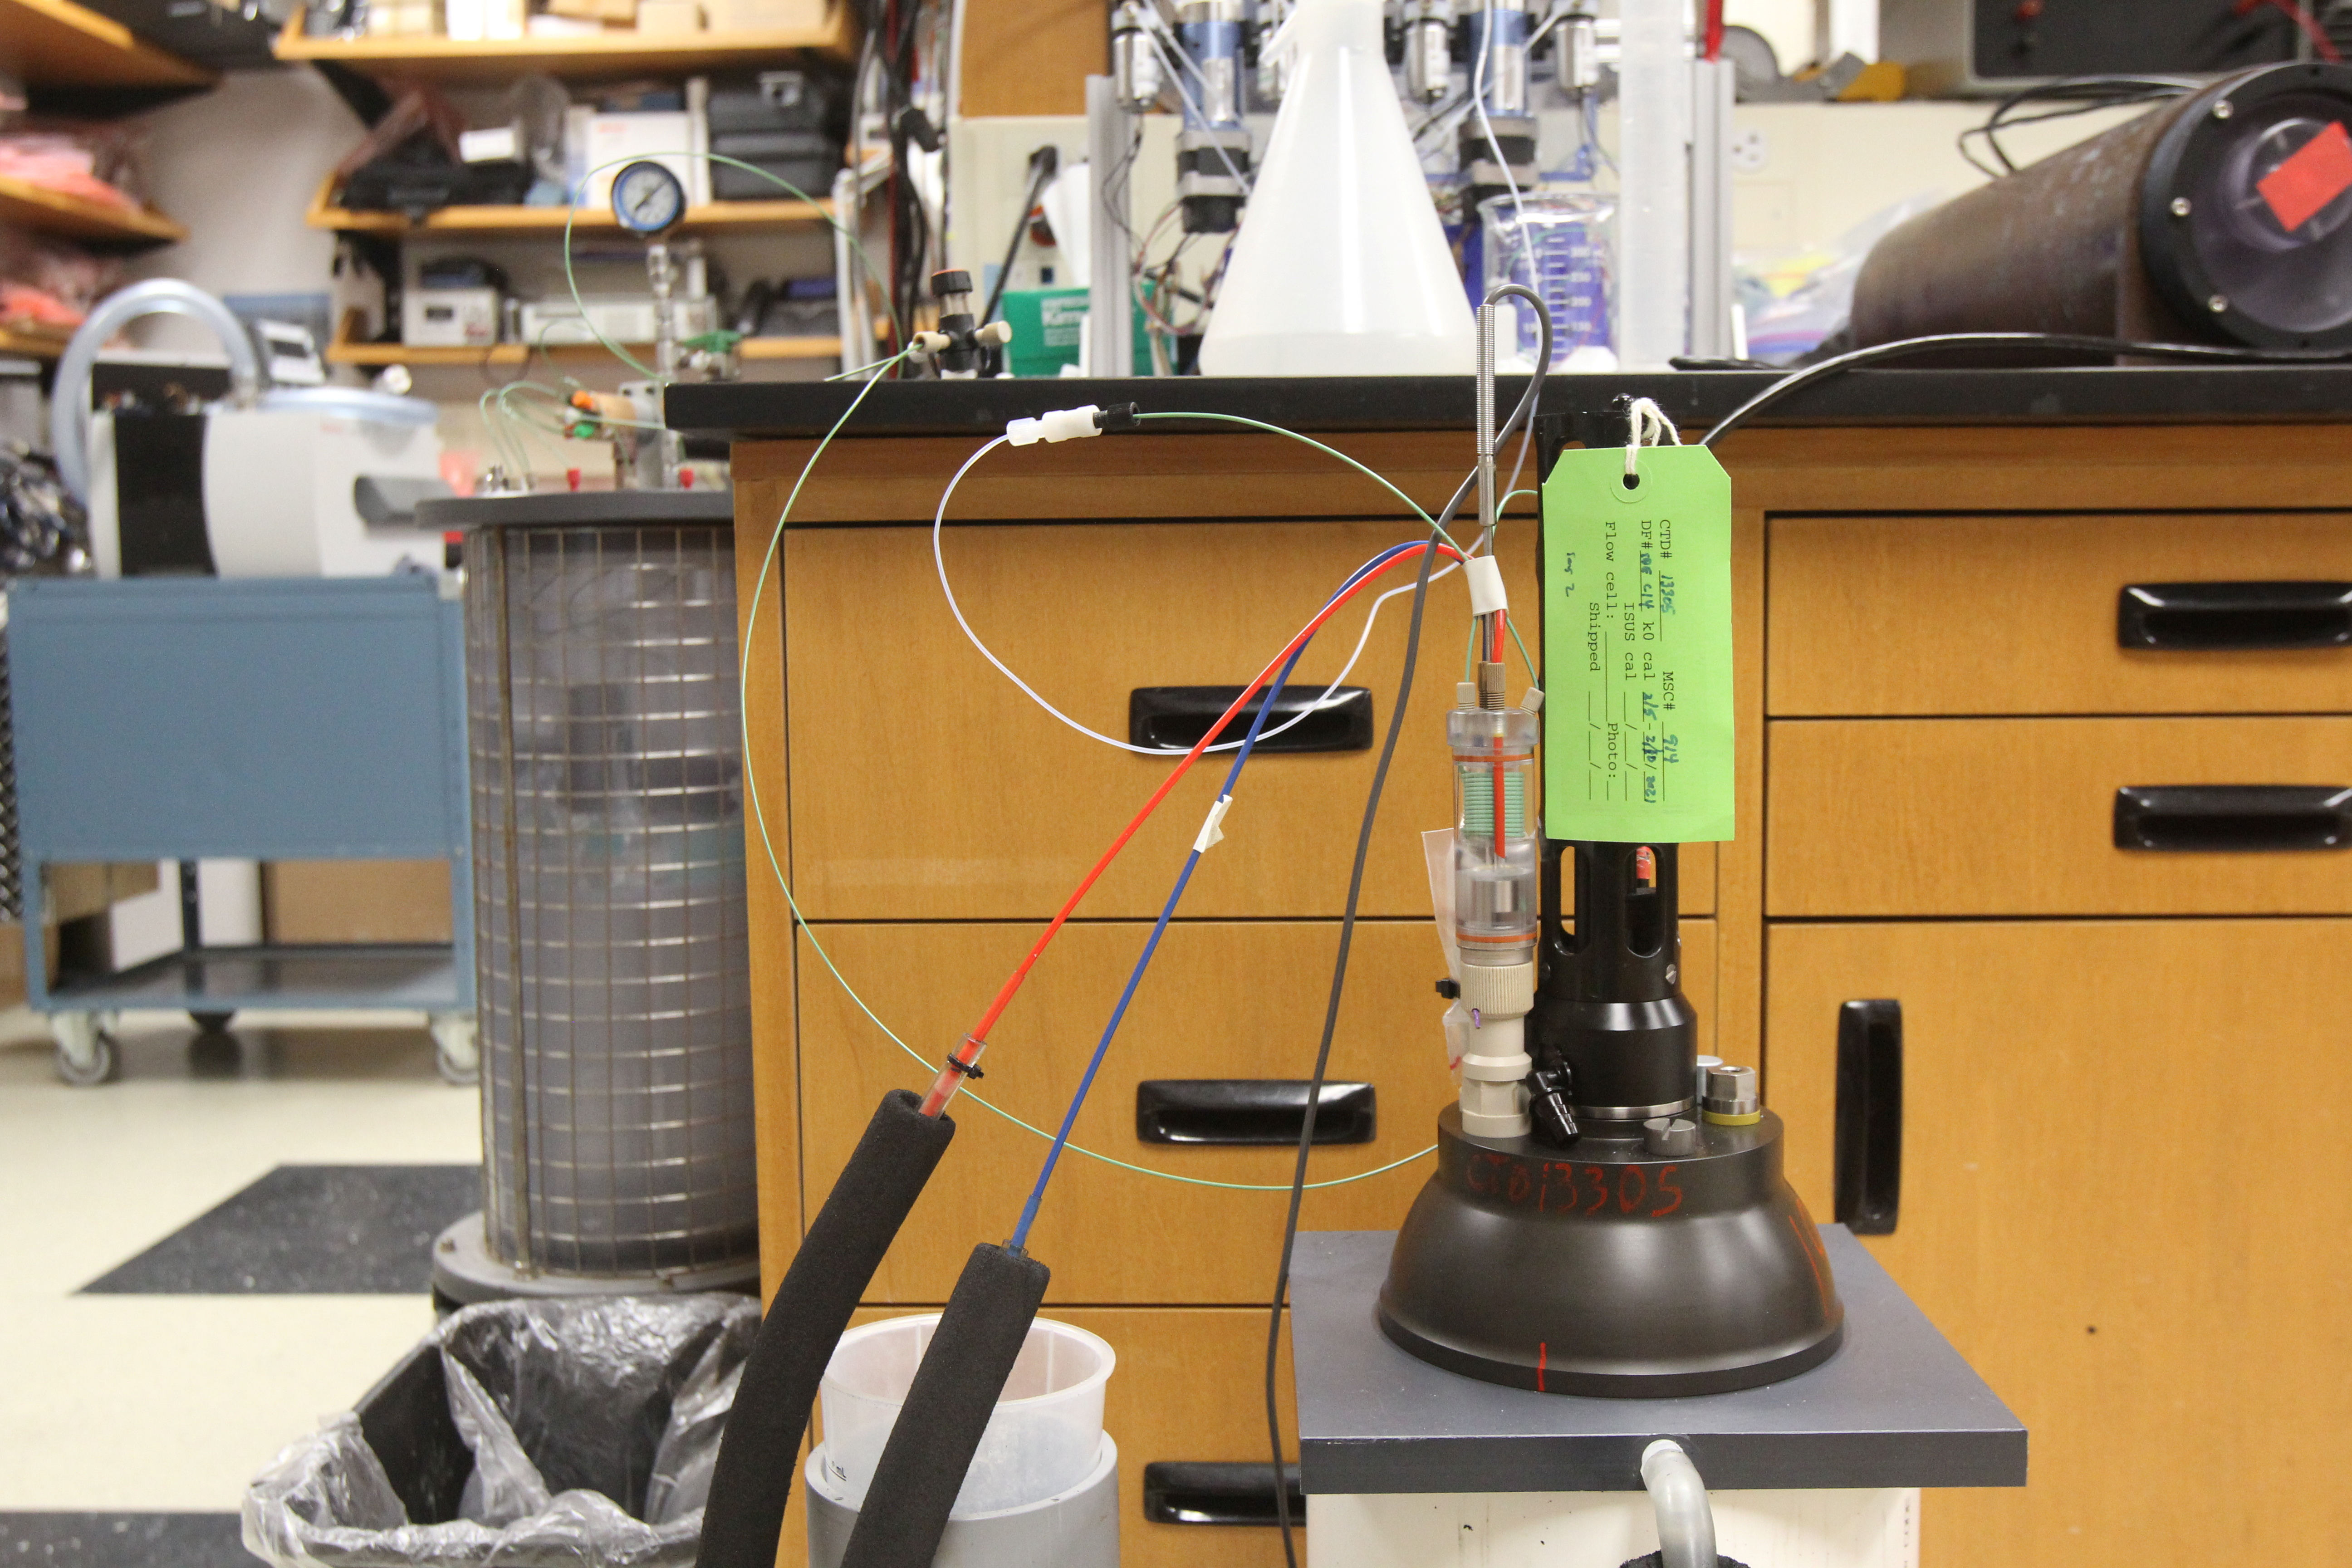 A device used to calibrate a nitrate sensor is seen in a laboratory at the Monterey Bay Aquarium Research Institute in Moss Landing, California, U.S. on March 9, 2021. Picture taken March 9, 2021. REUTERS/Nathan Frandino